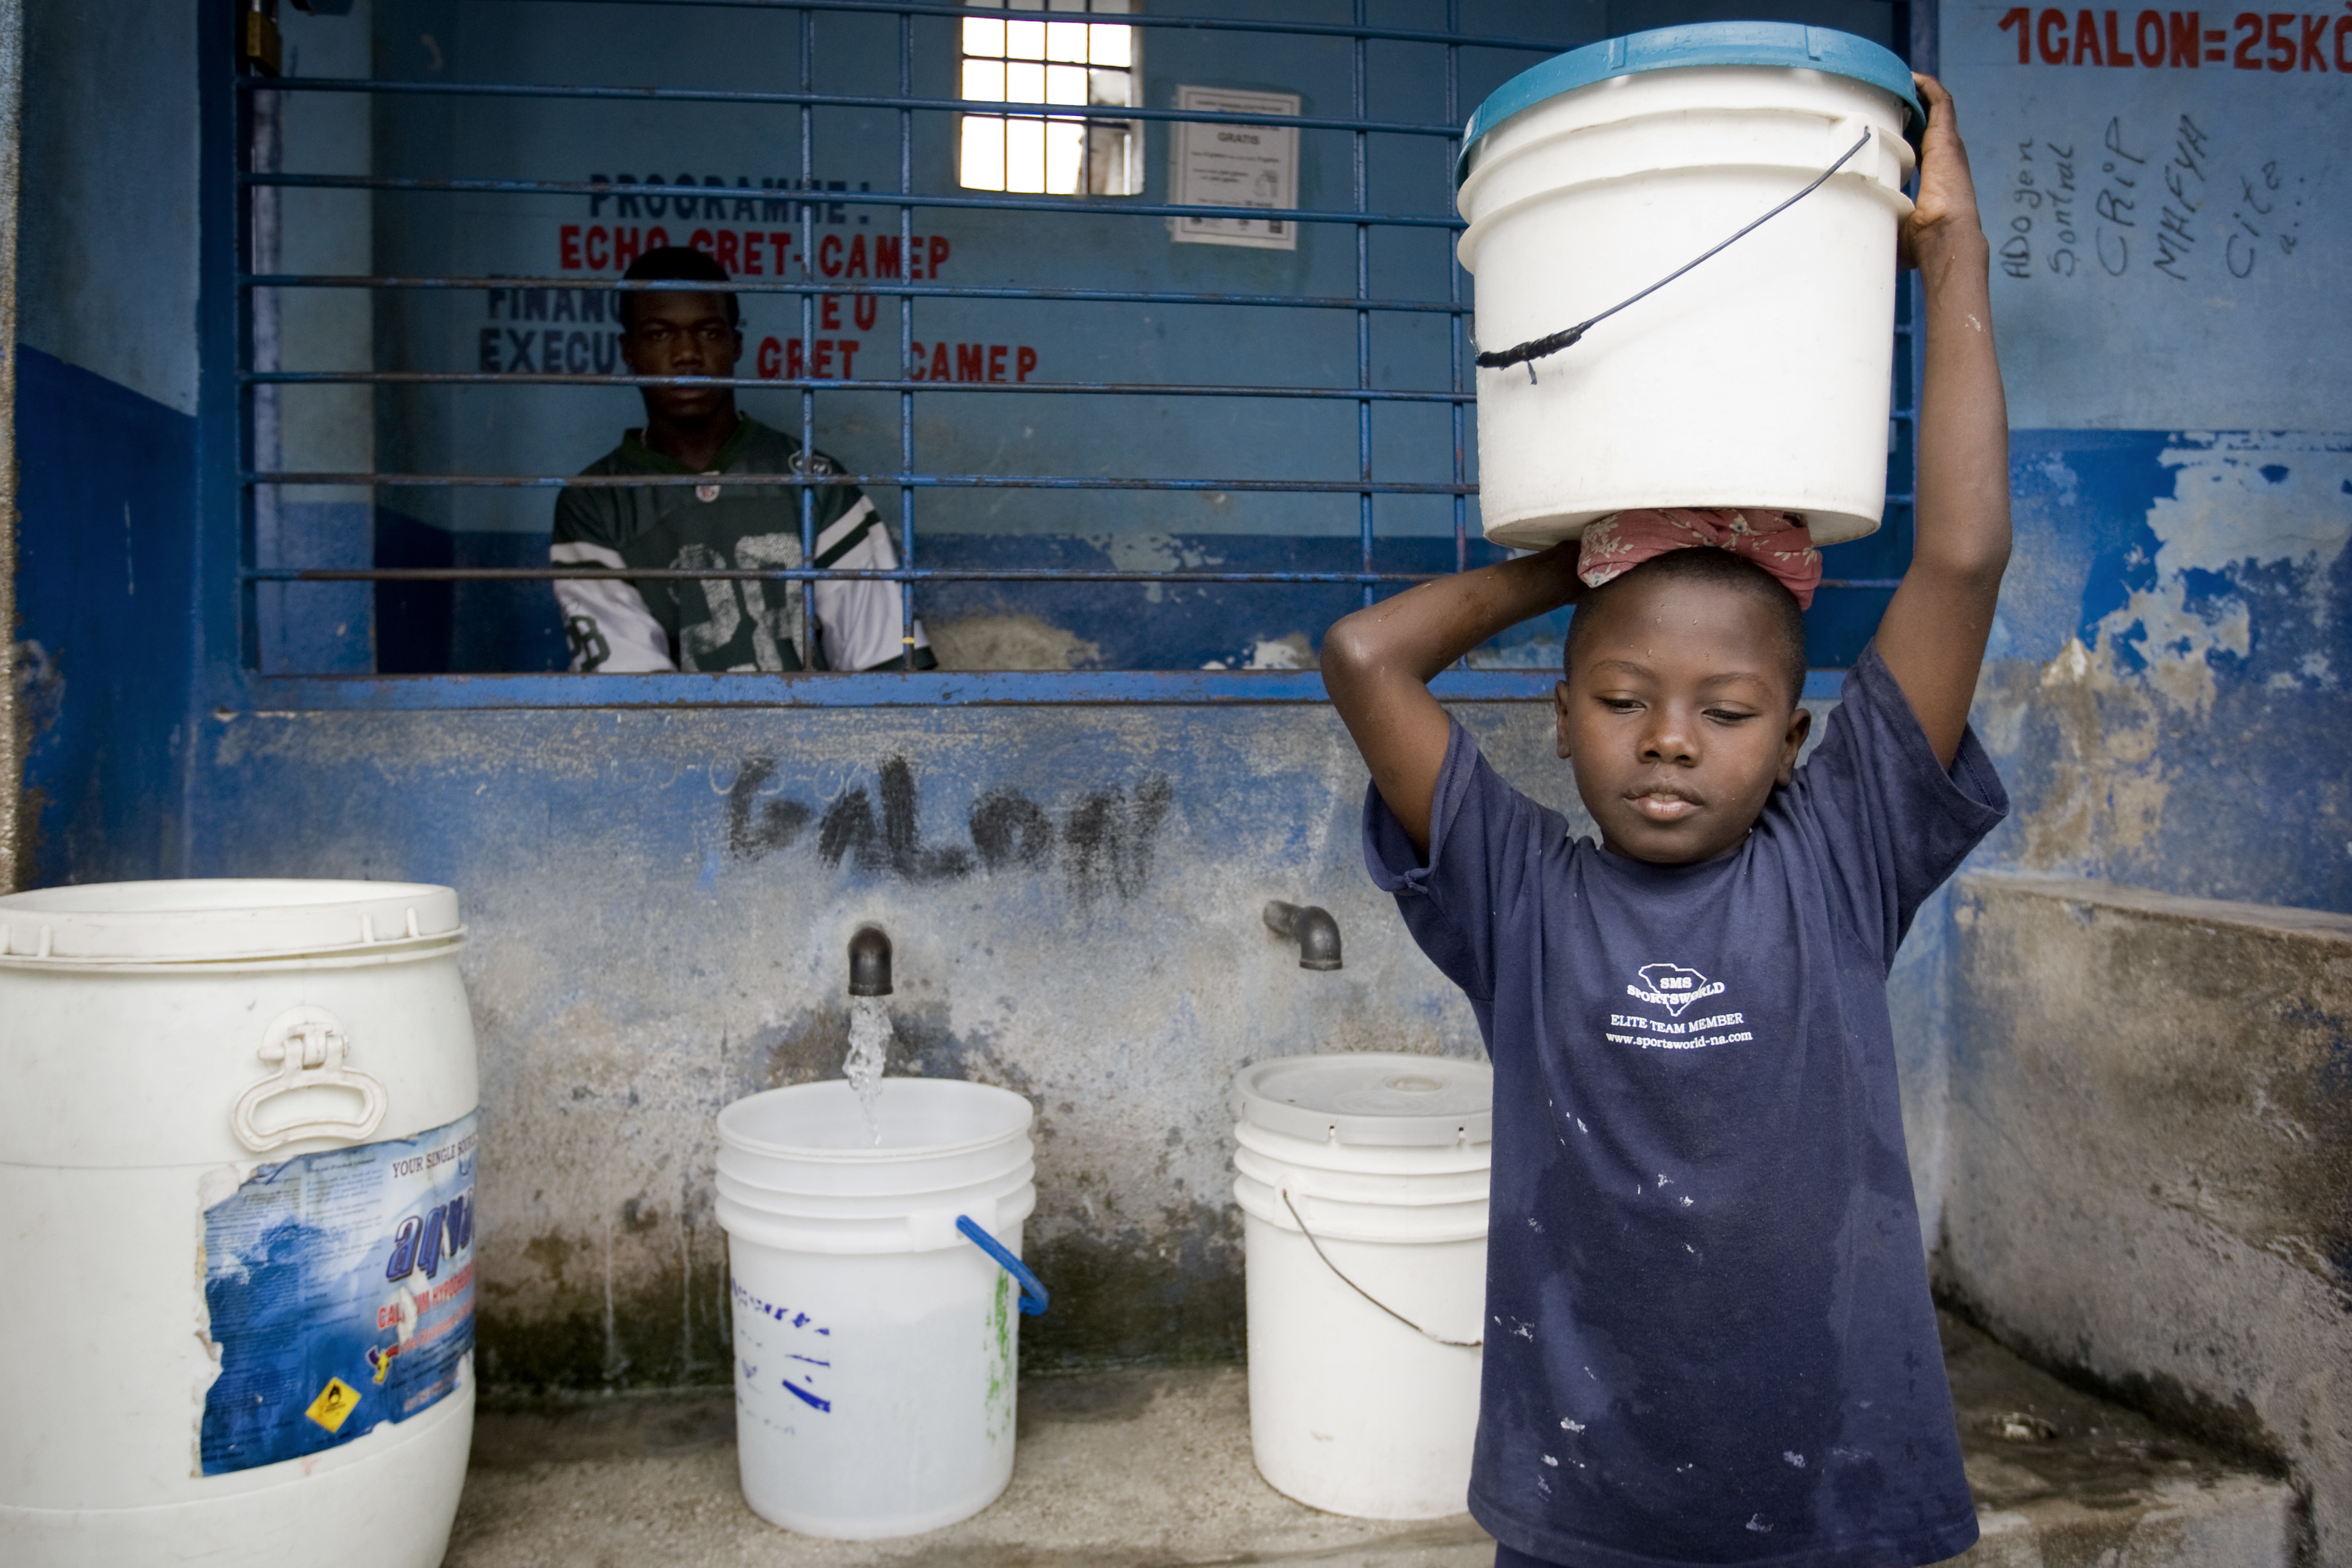 A boy buys water at a distribution point in Cite L'Eternel, a poor neighborhood of Port au Prince. UNICEF, through the NGO Gret, distributes thousands of aqua-tabs to the Haitian population to respond to the cholera outbreak that killed over 1000 people.